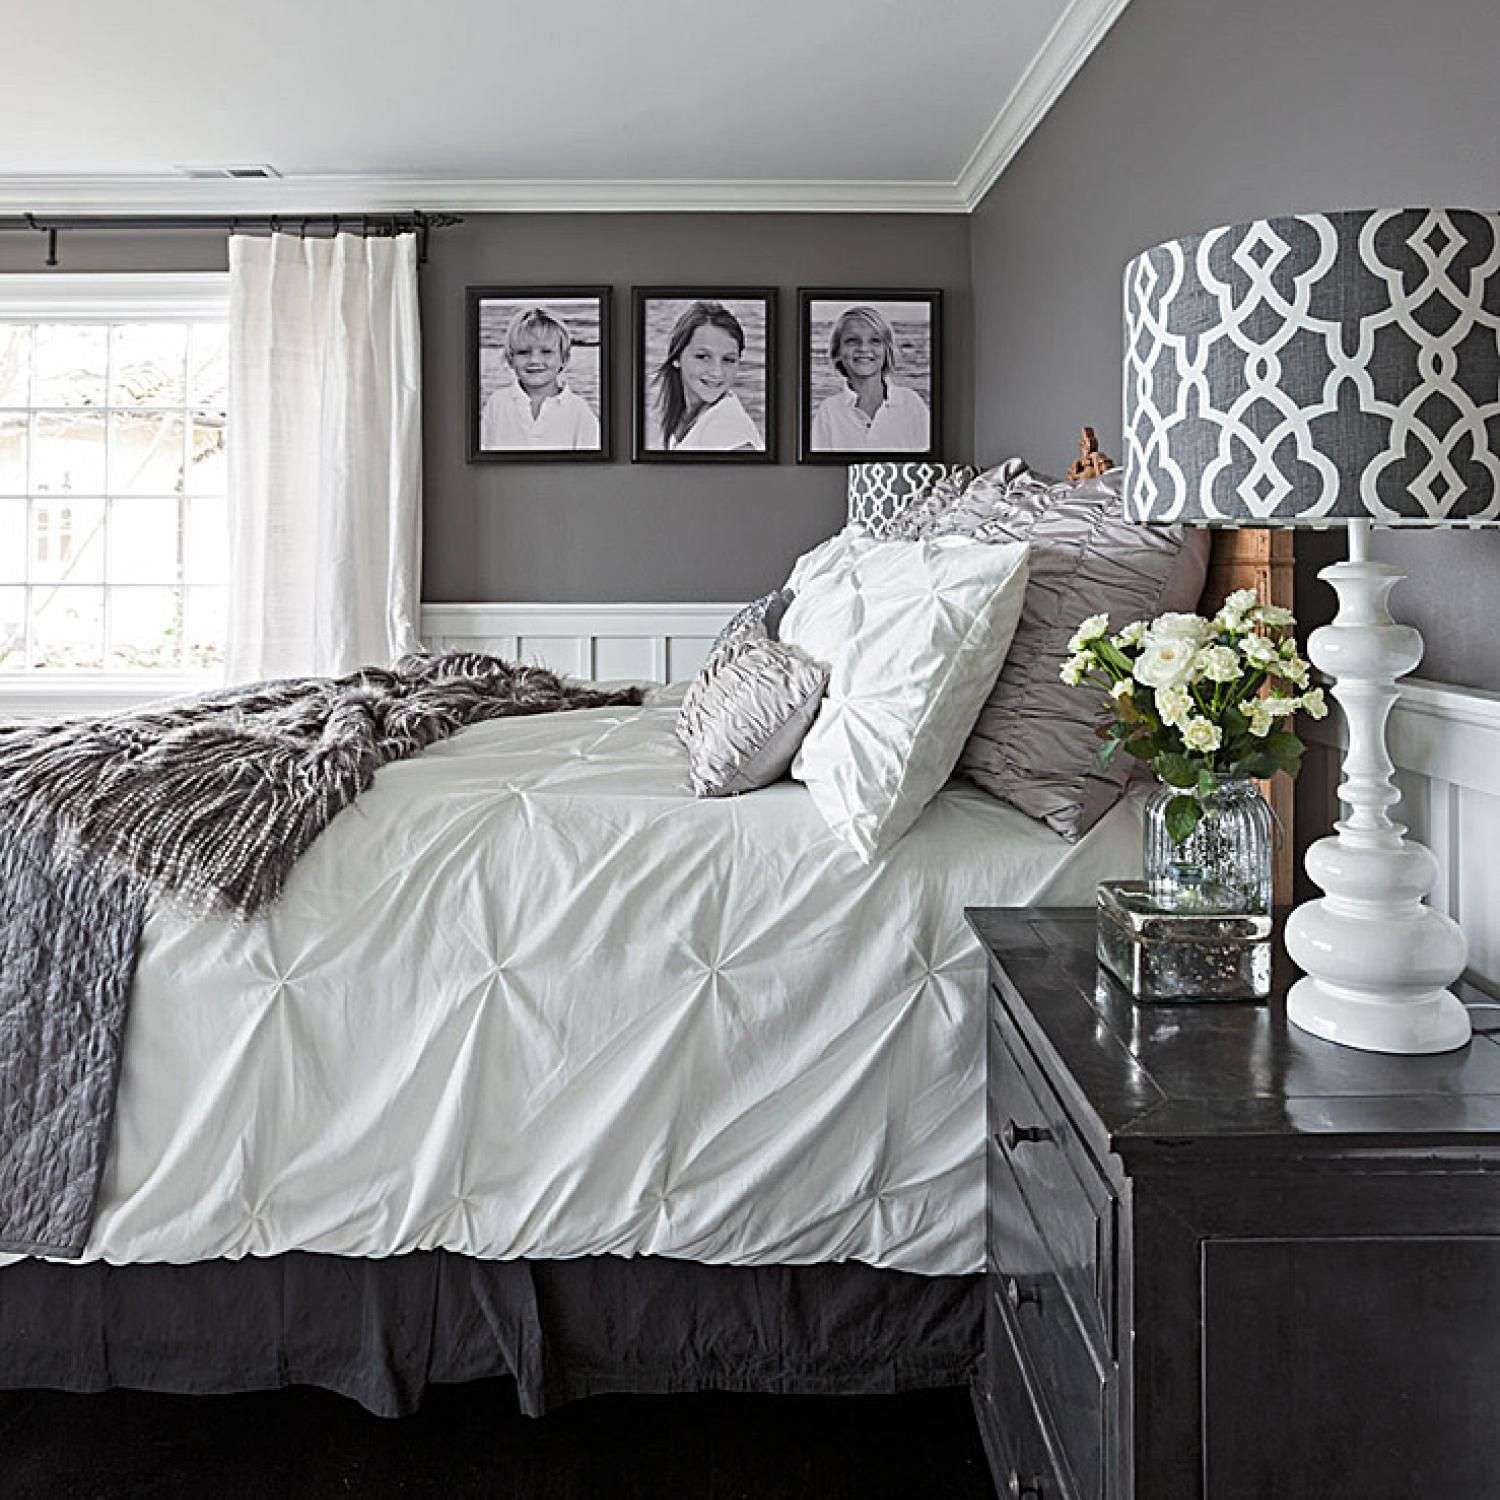 Gorgeous gray and white bedrooms bedrooms pinterest for Black white and gray bedroom ideas